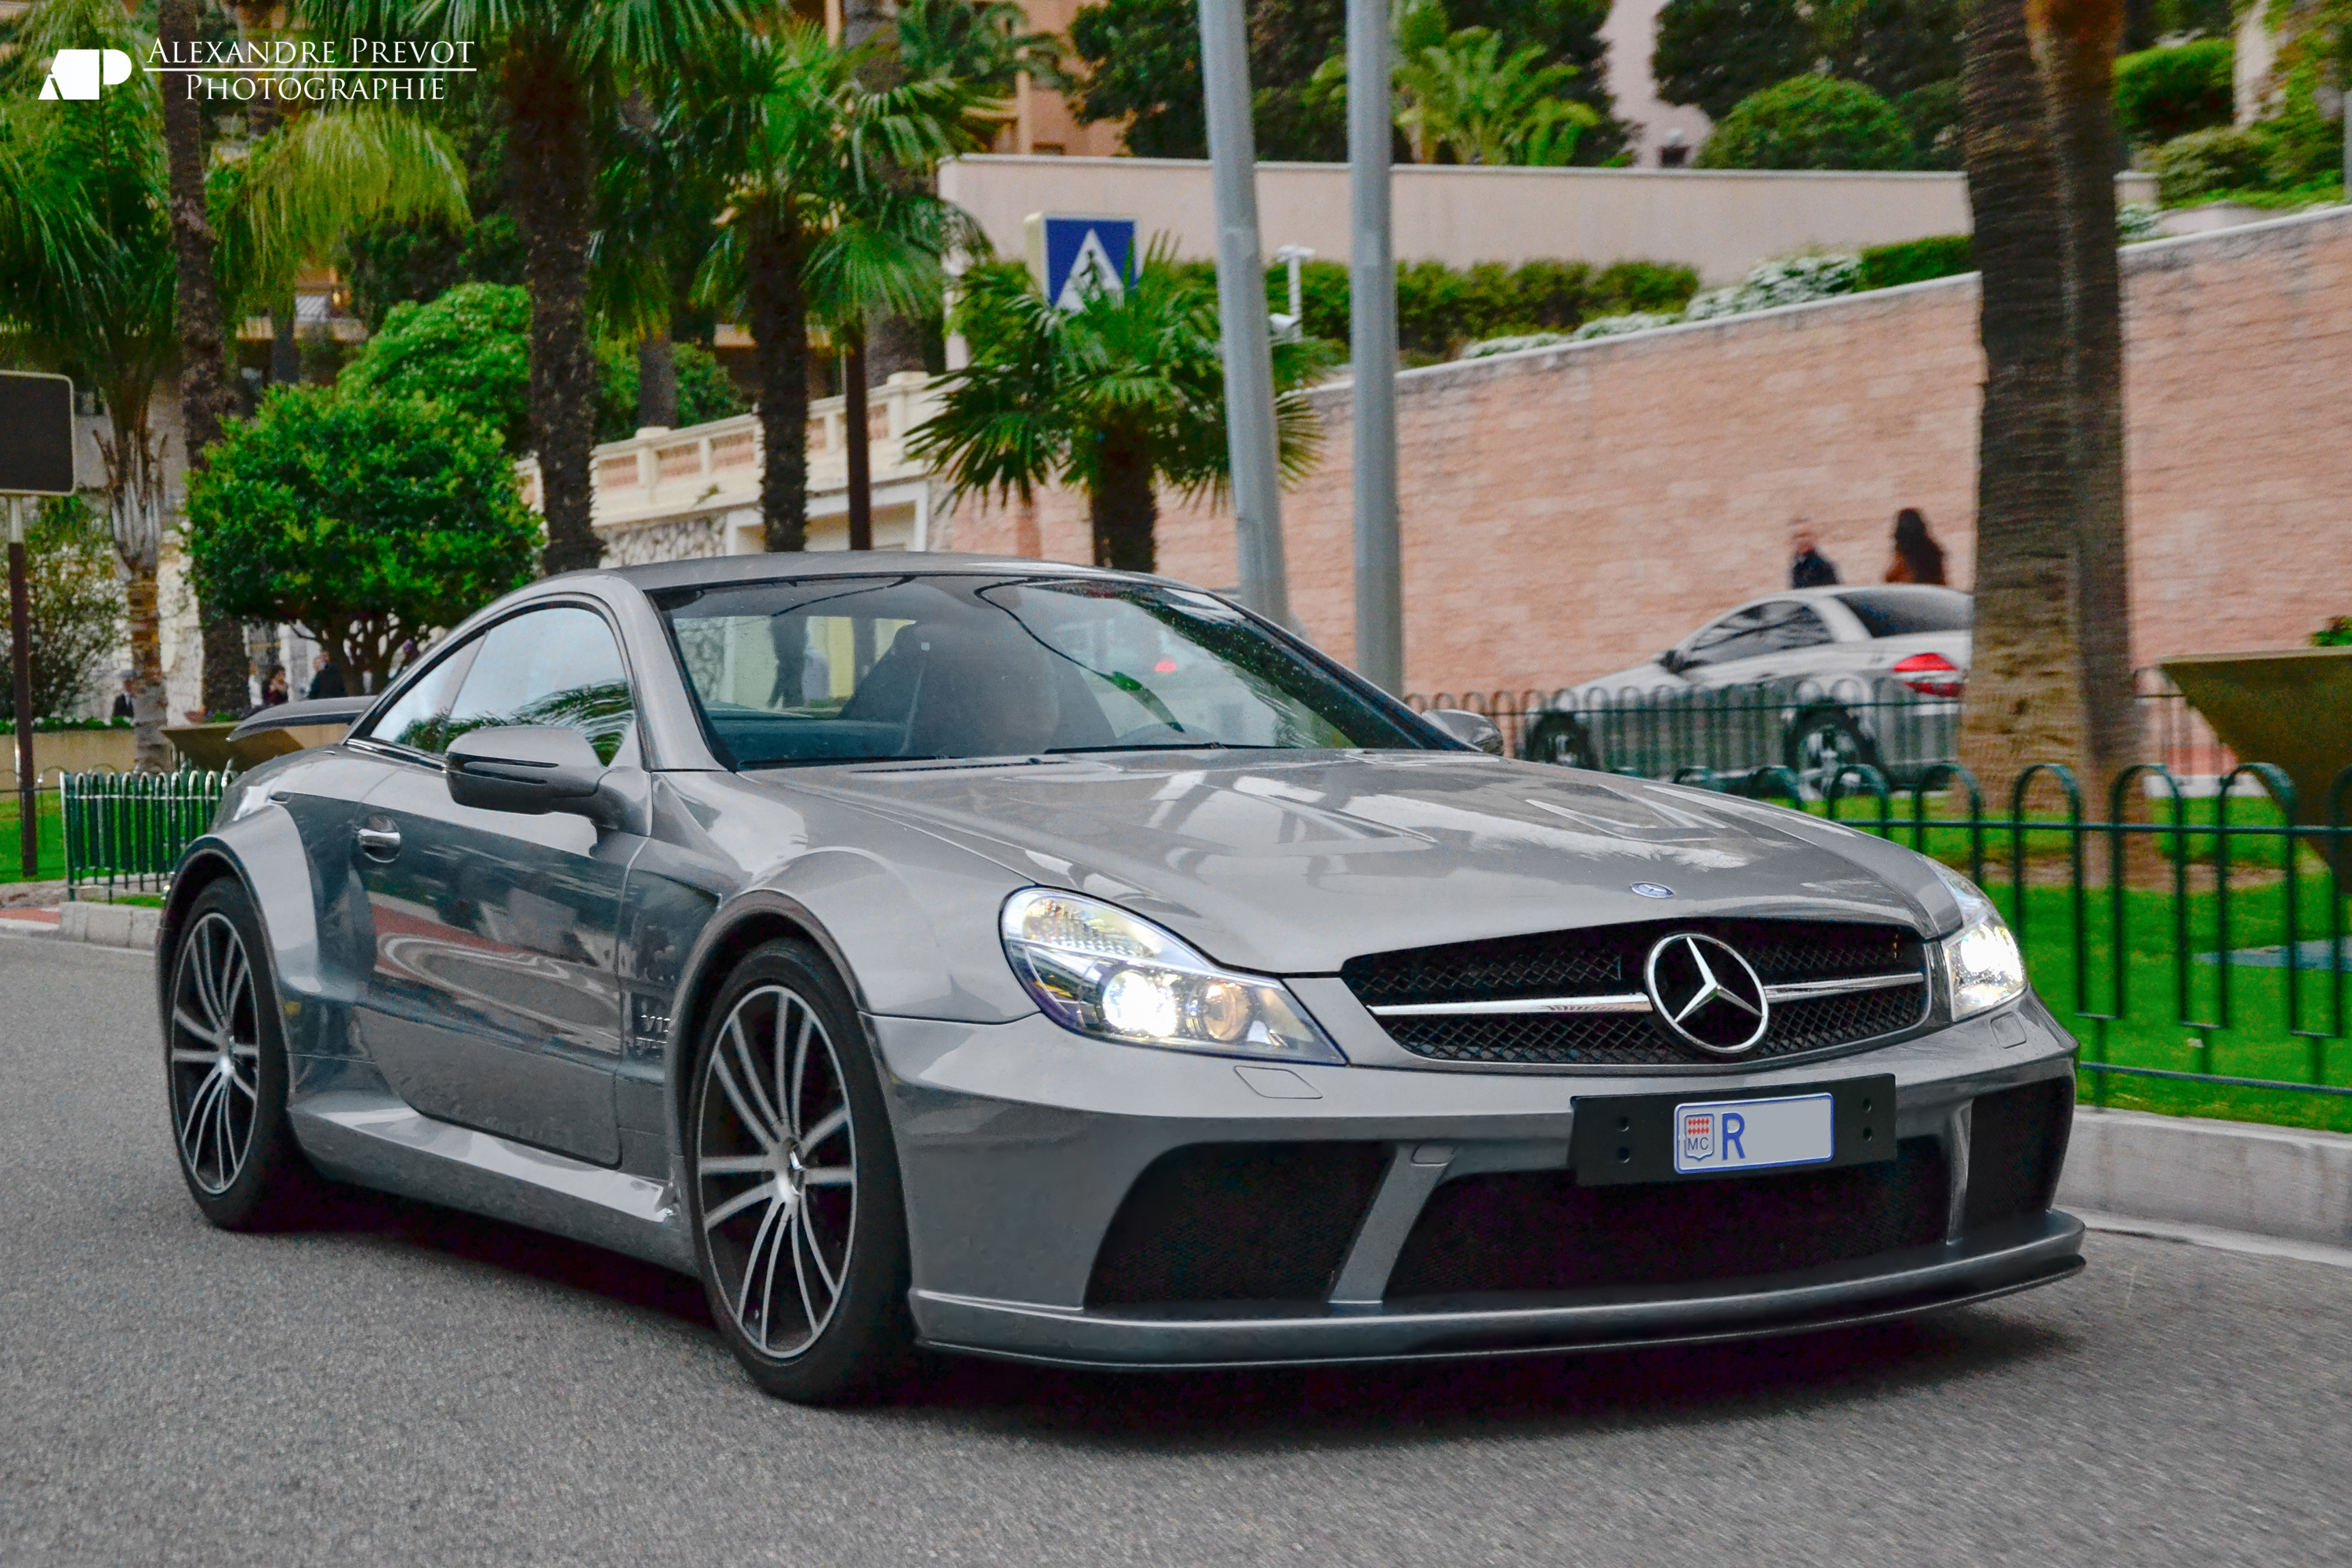 2018 Mercedes Benz SL 65 AMG photo - 2